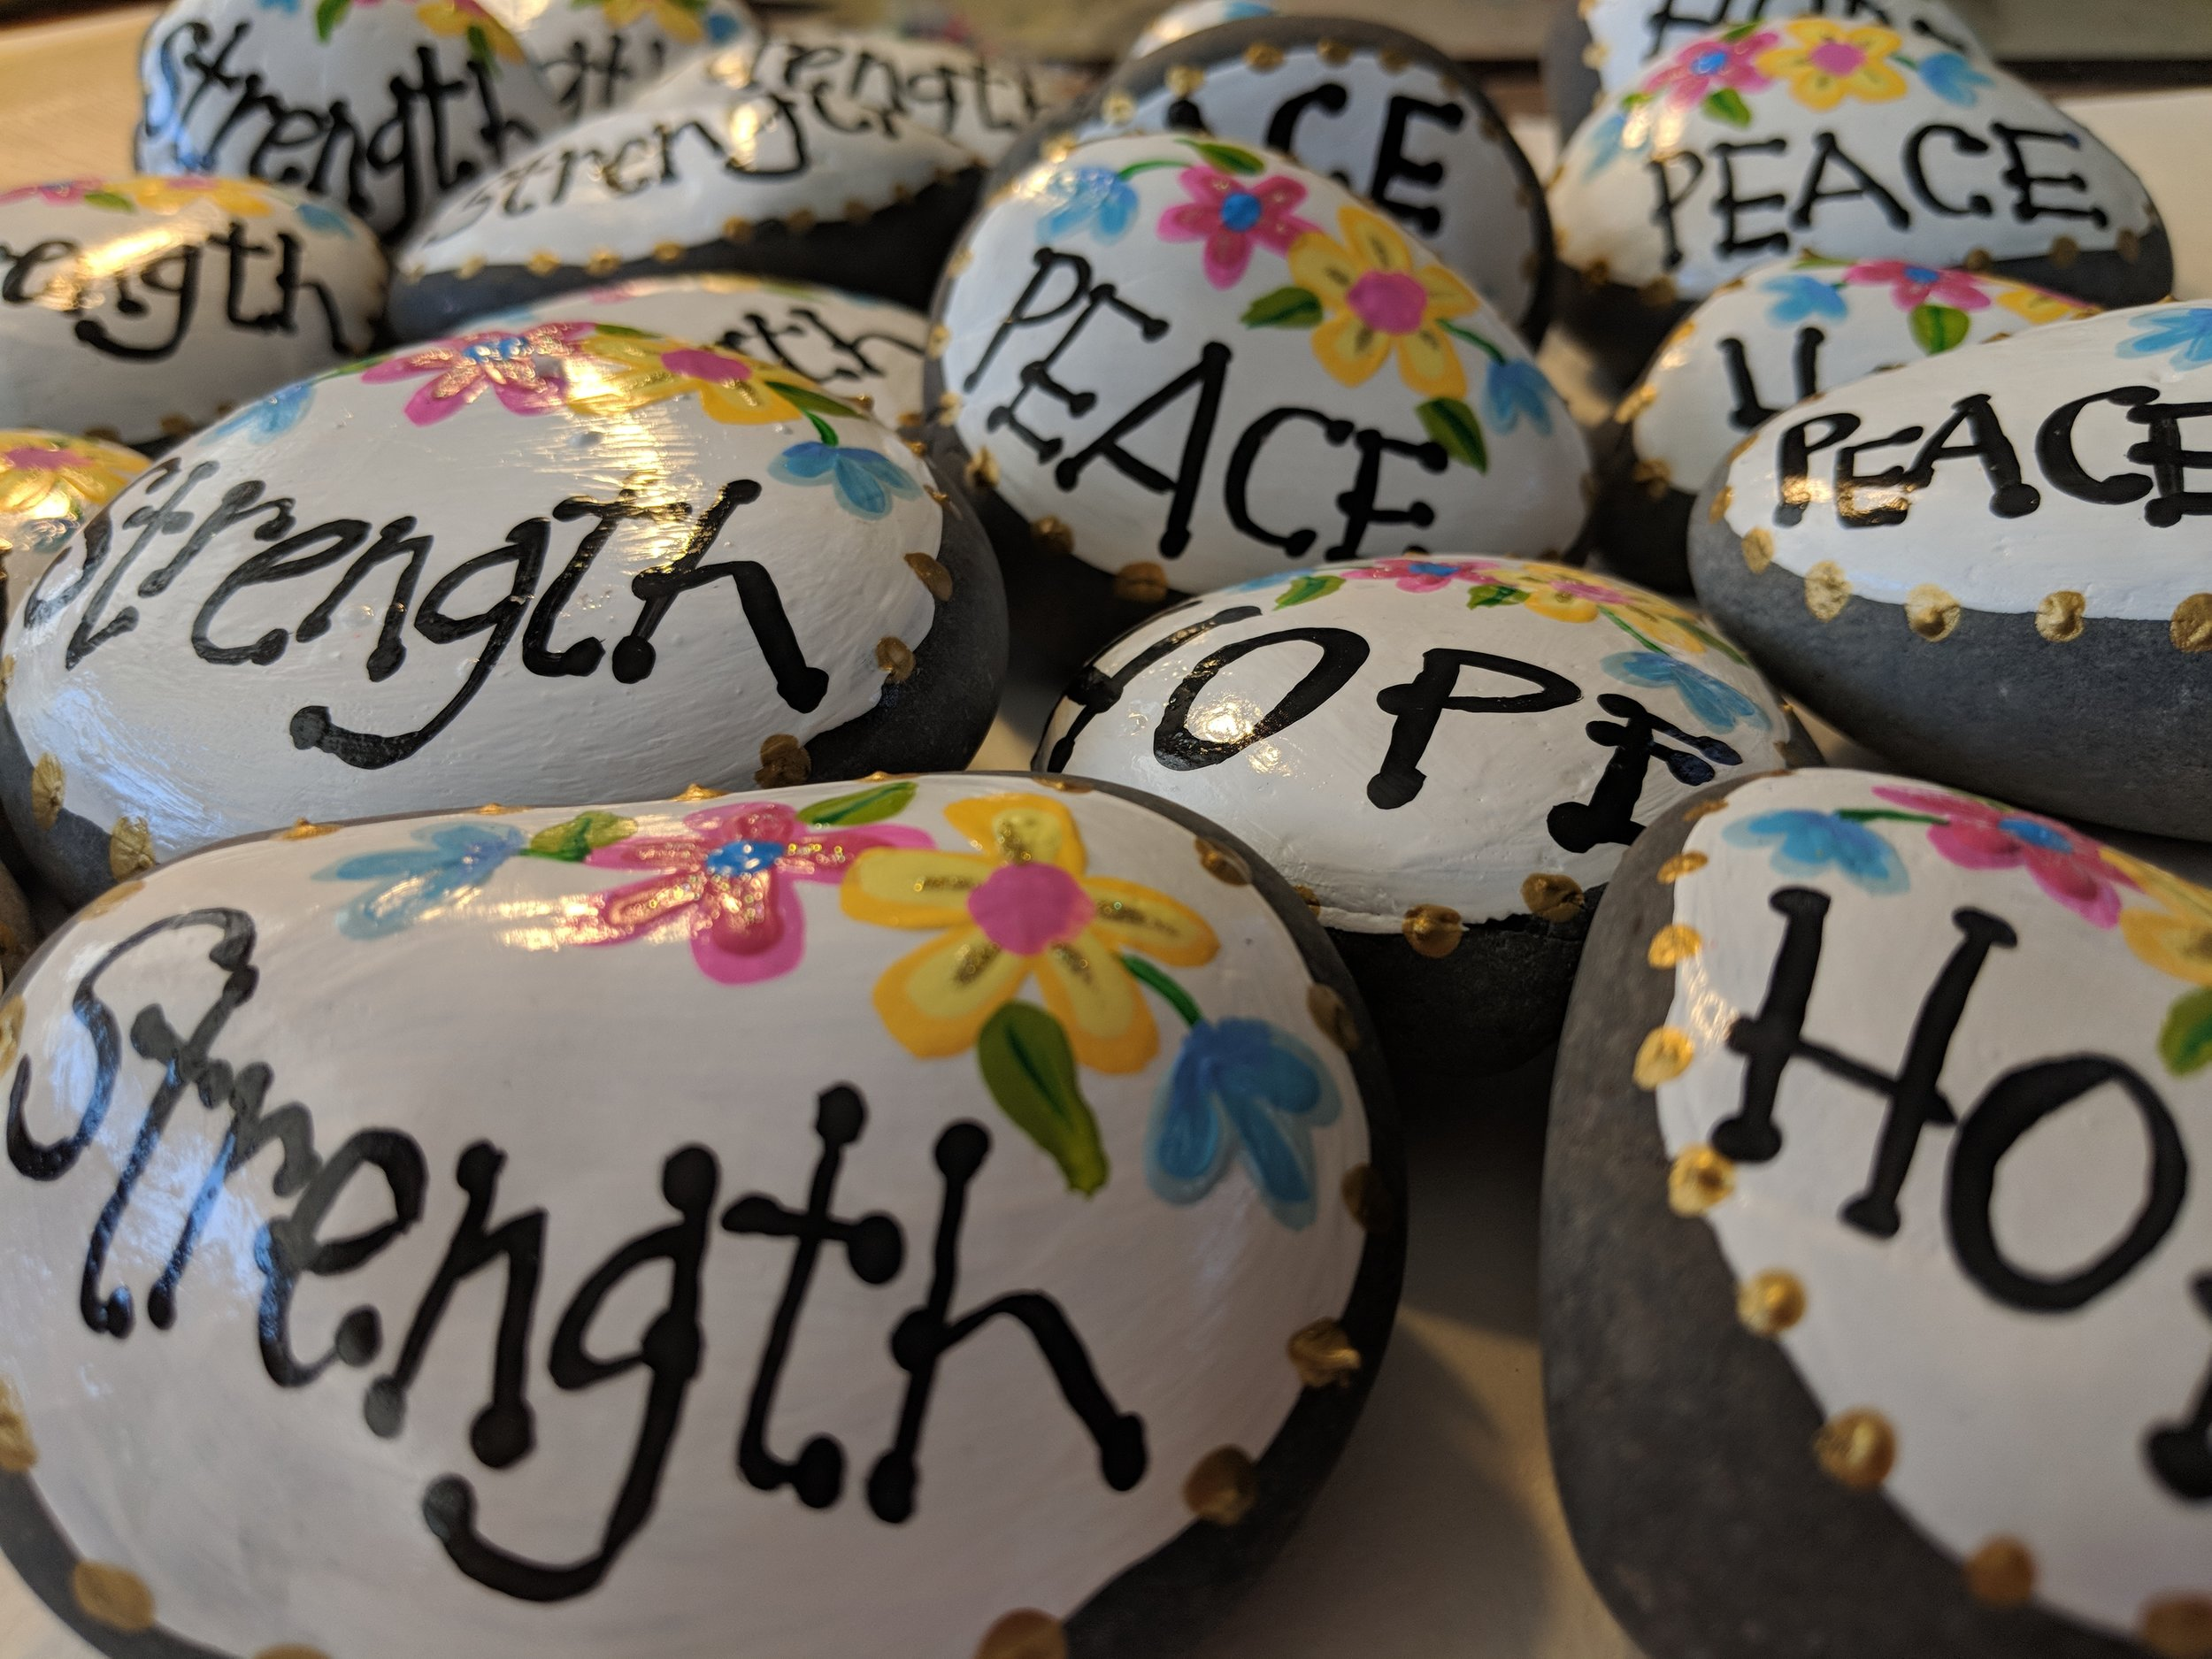 Hand painted rocks that I created and donated to an organization that hosted a retreat for women suffering child loss.